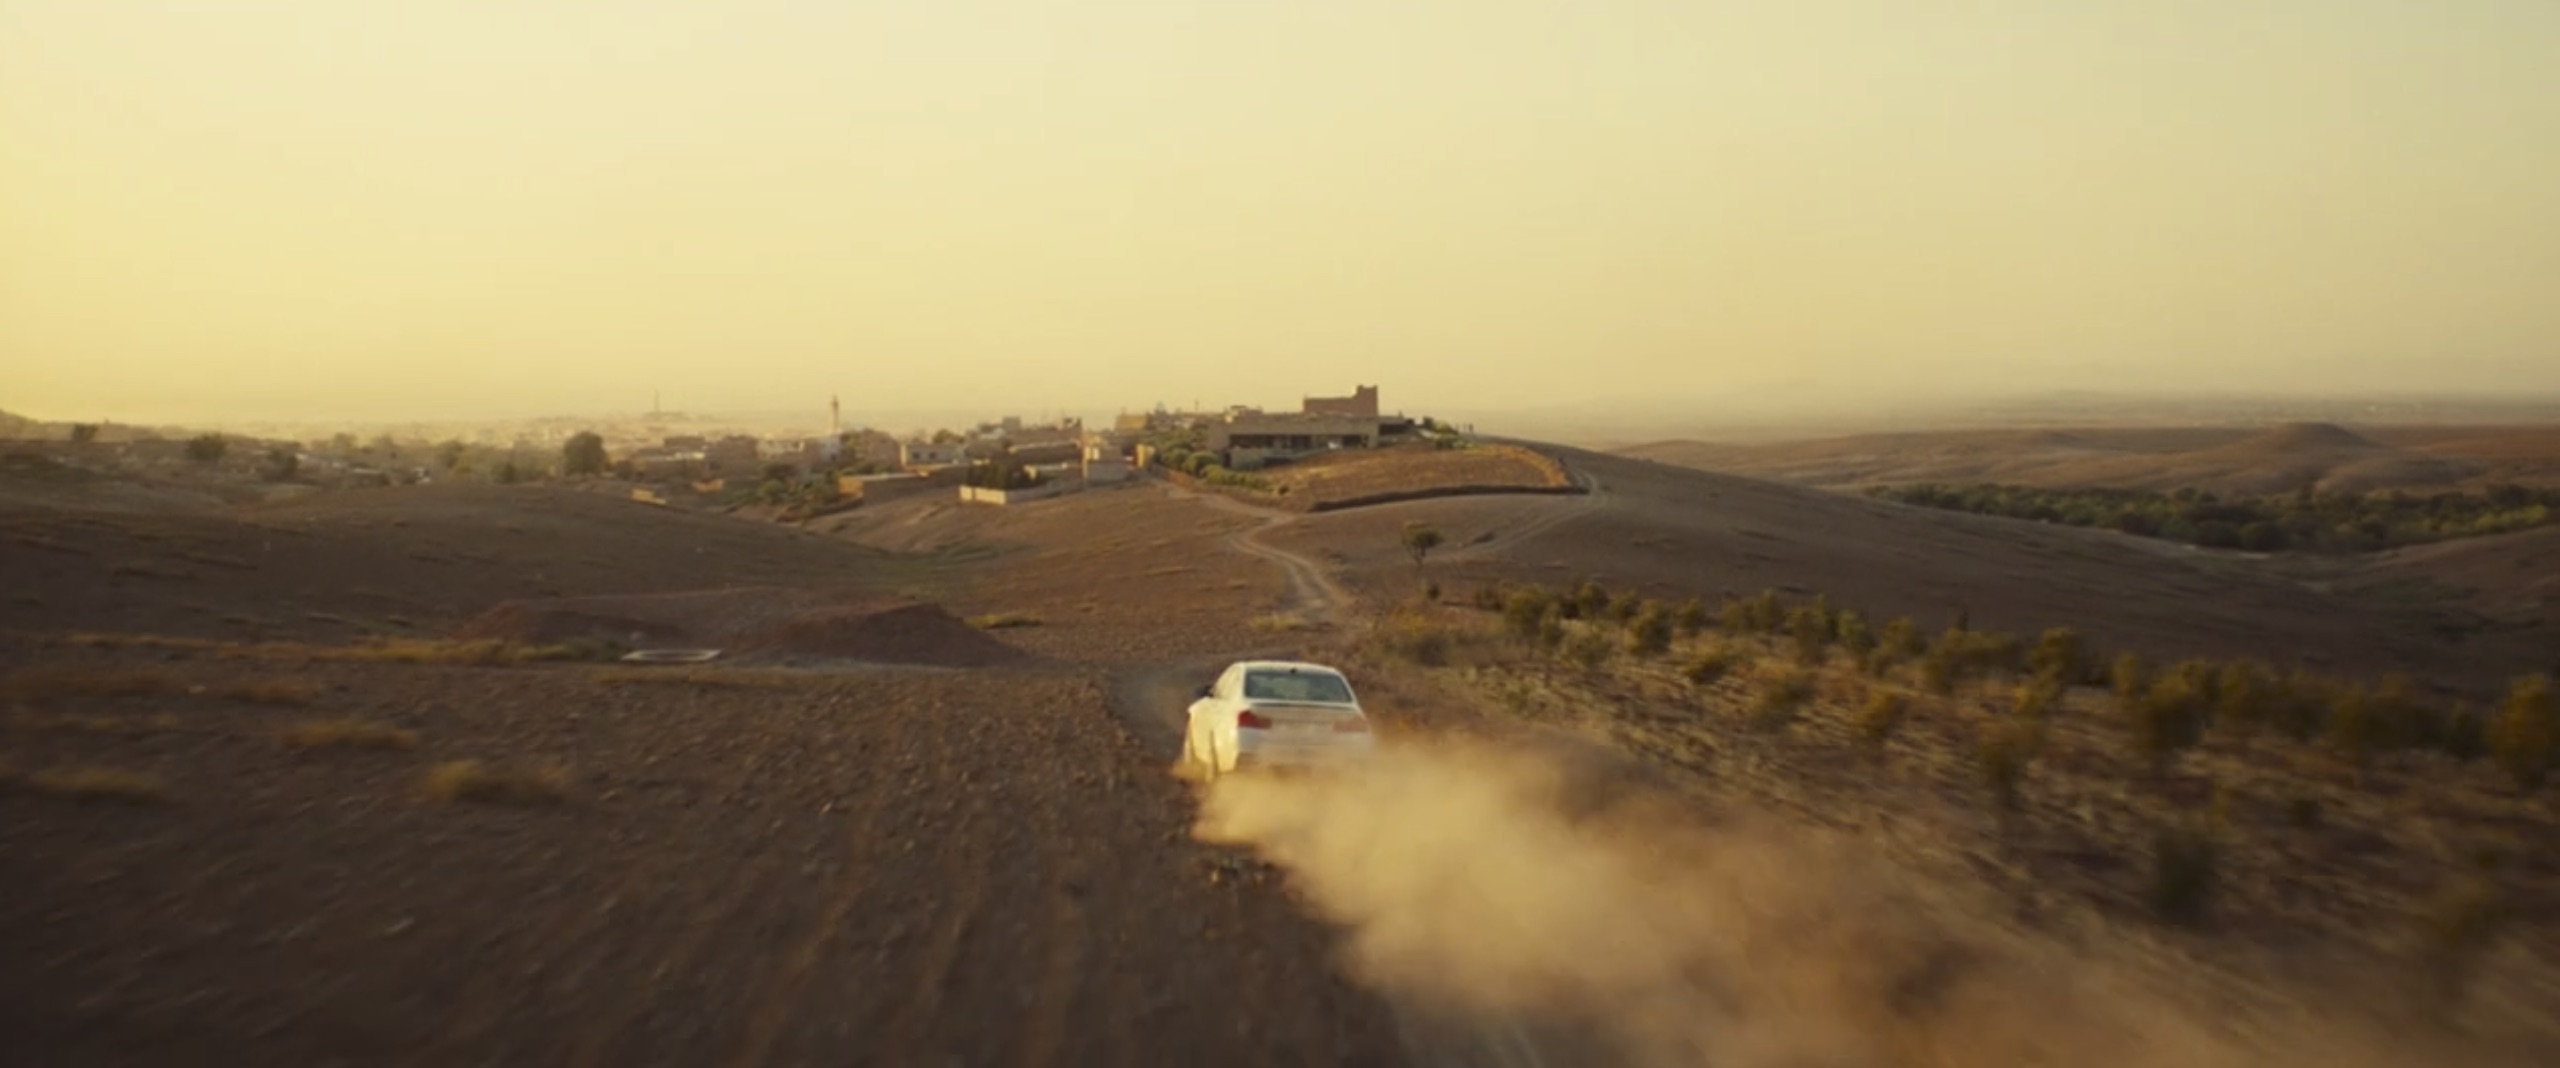 Mission Impossible: Rogue Nation bmw across desert